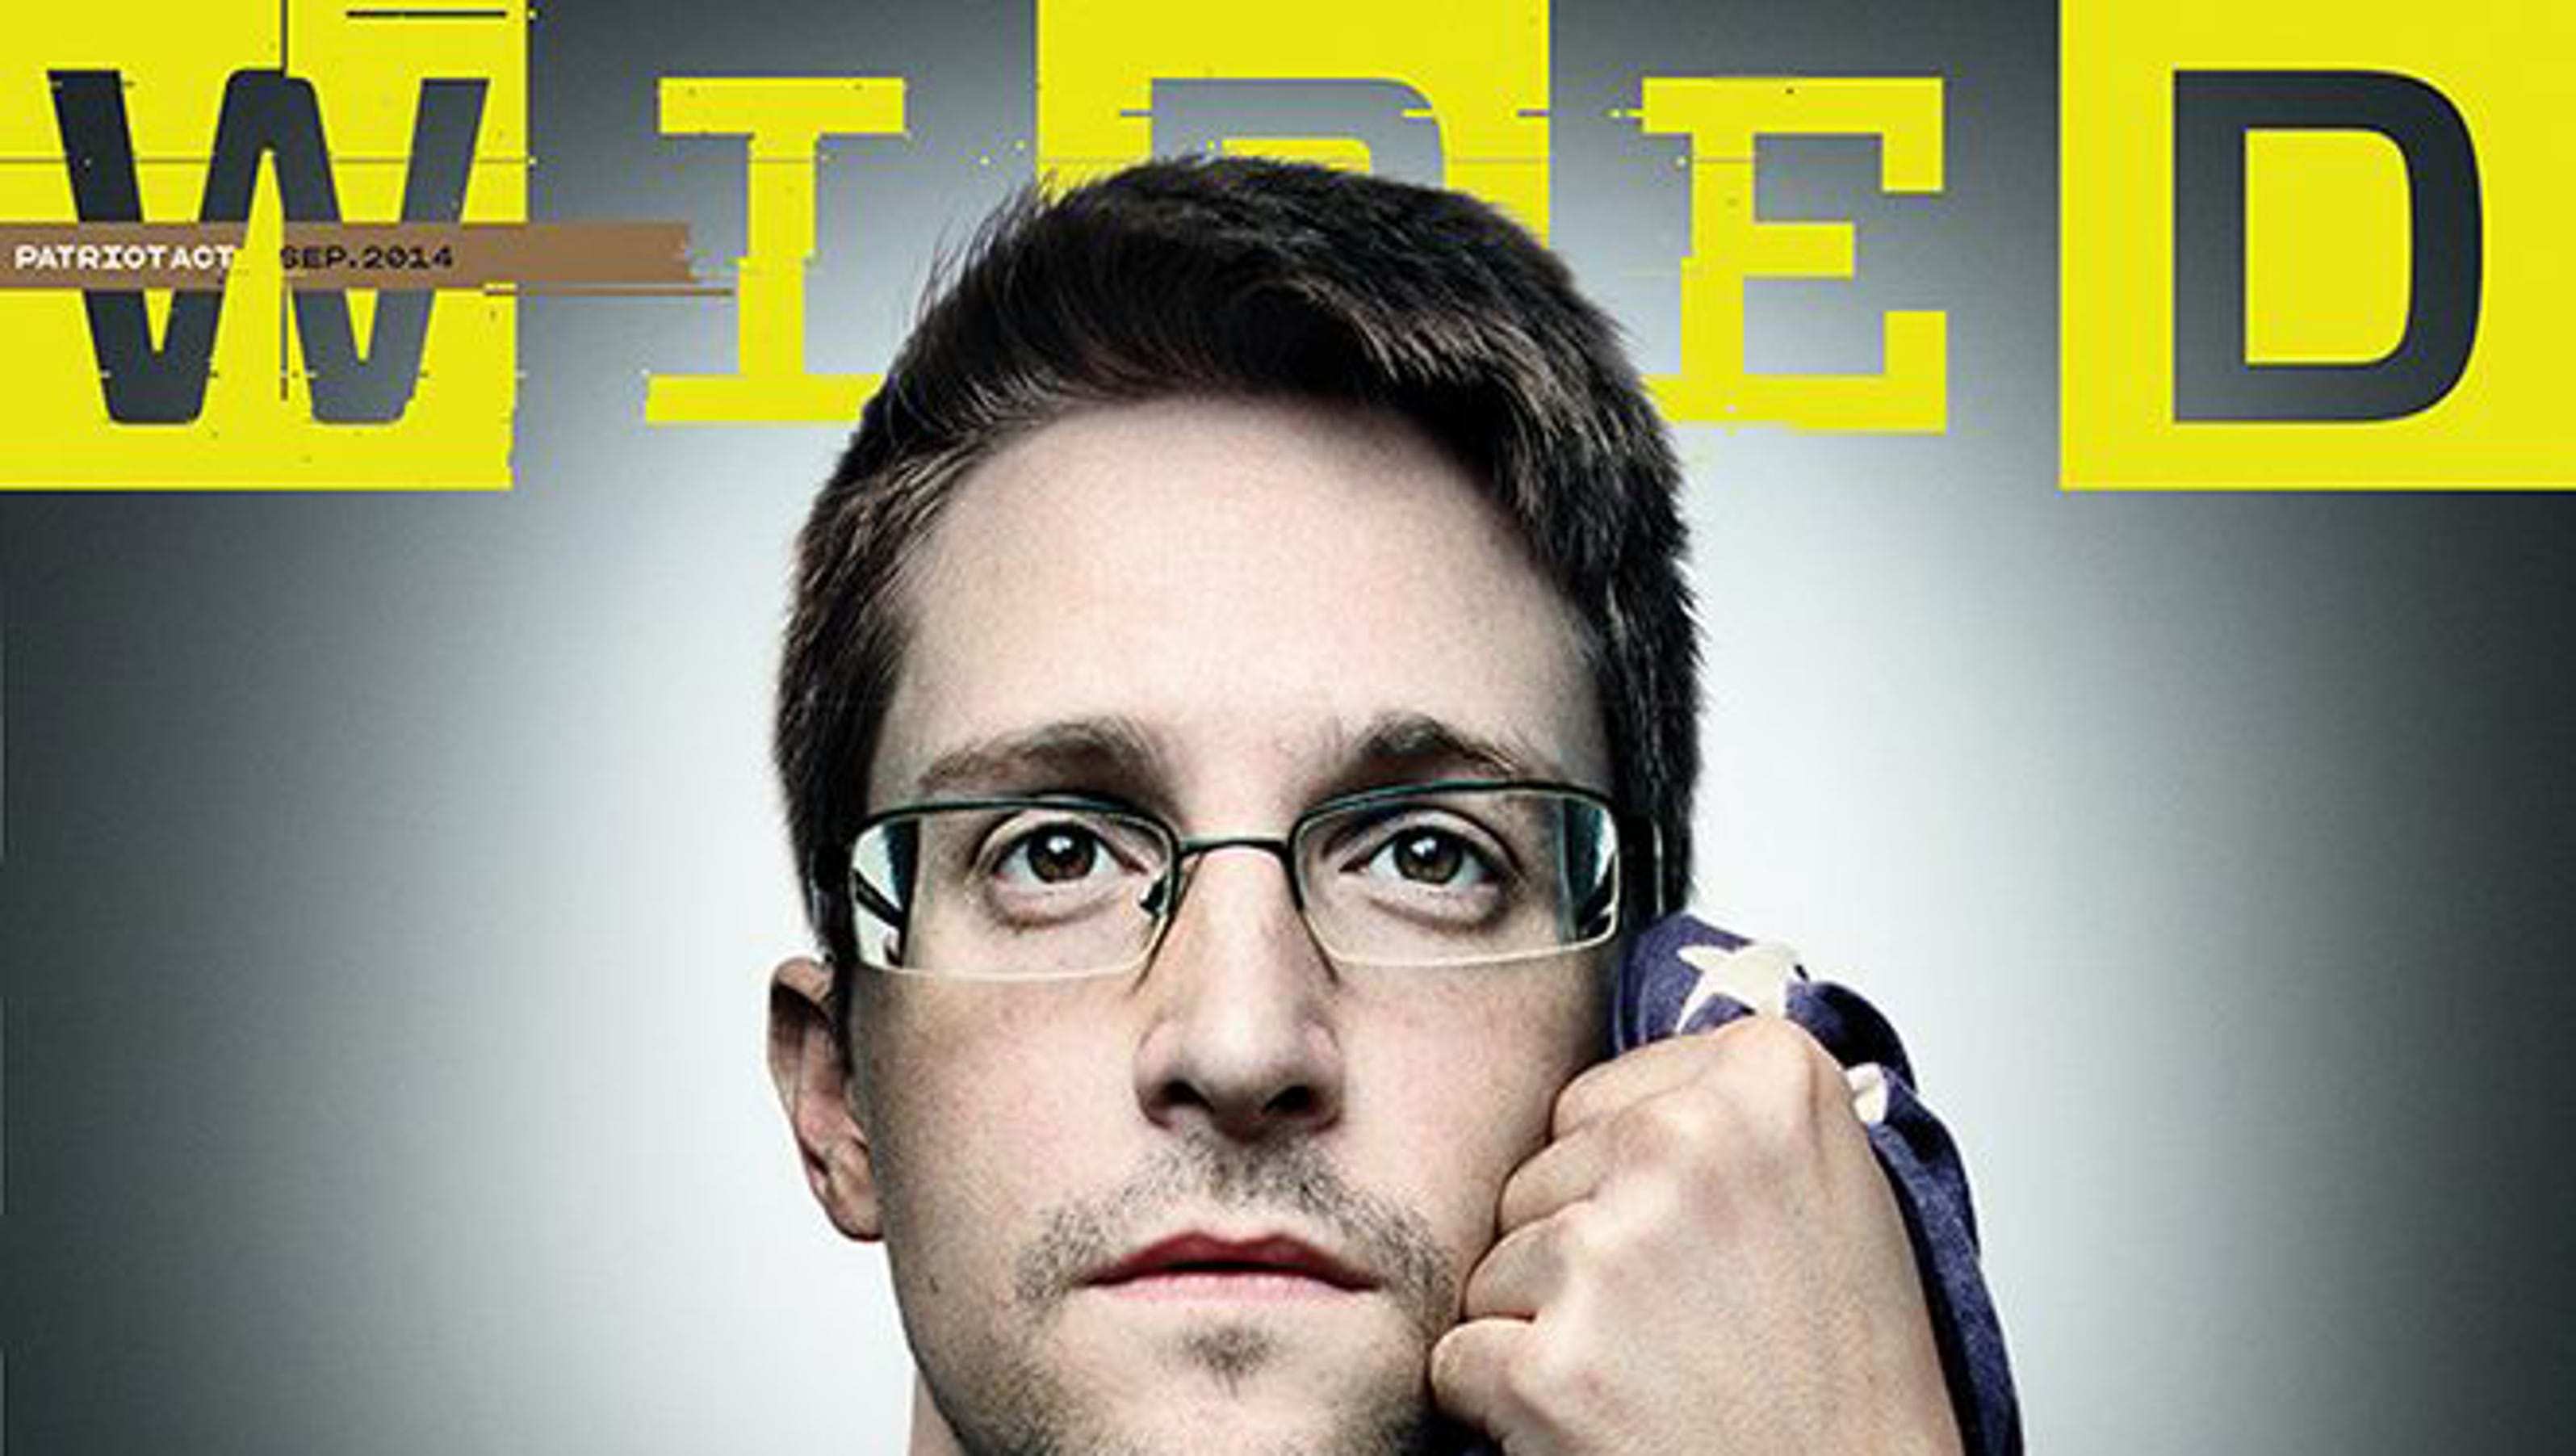 Embracing flag, Snowden says he hopes to return to U.S.